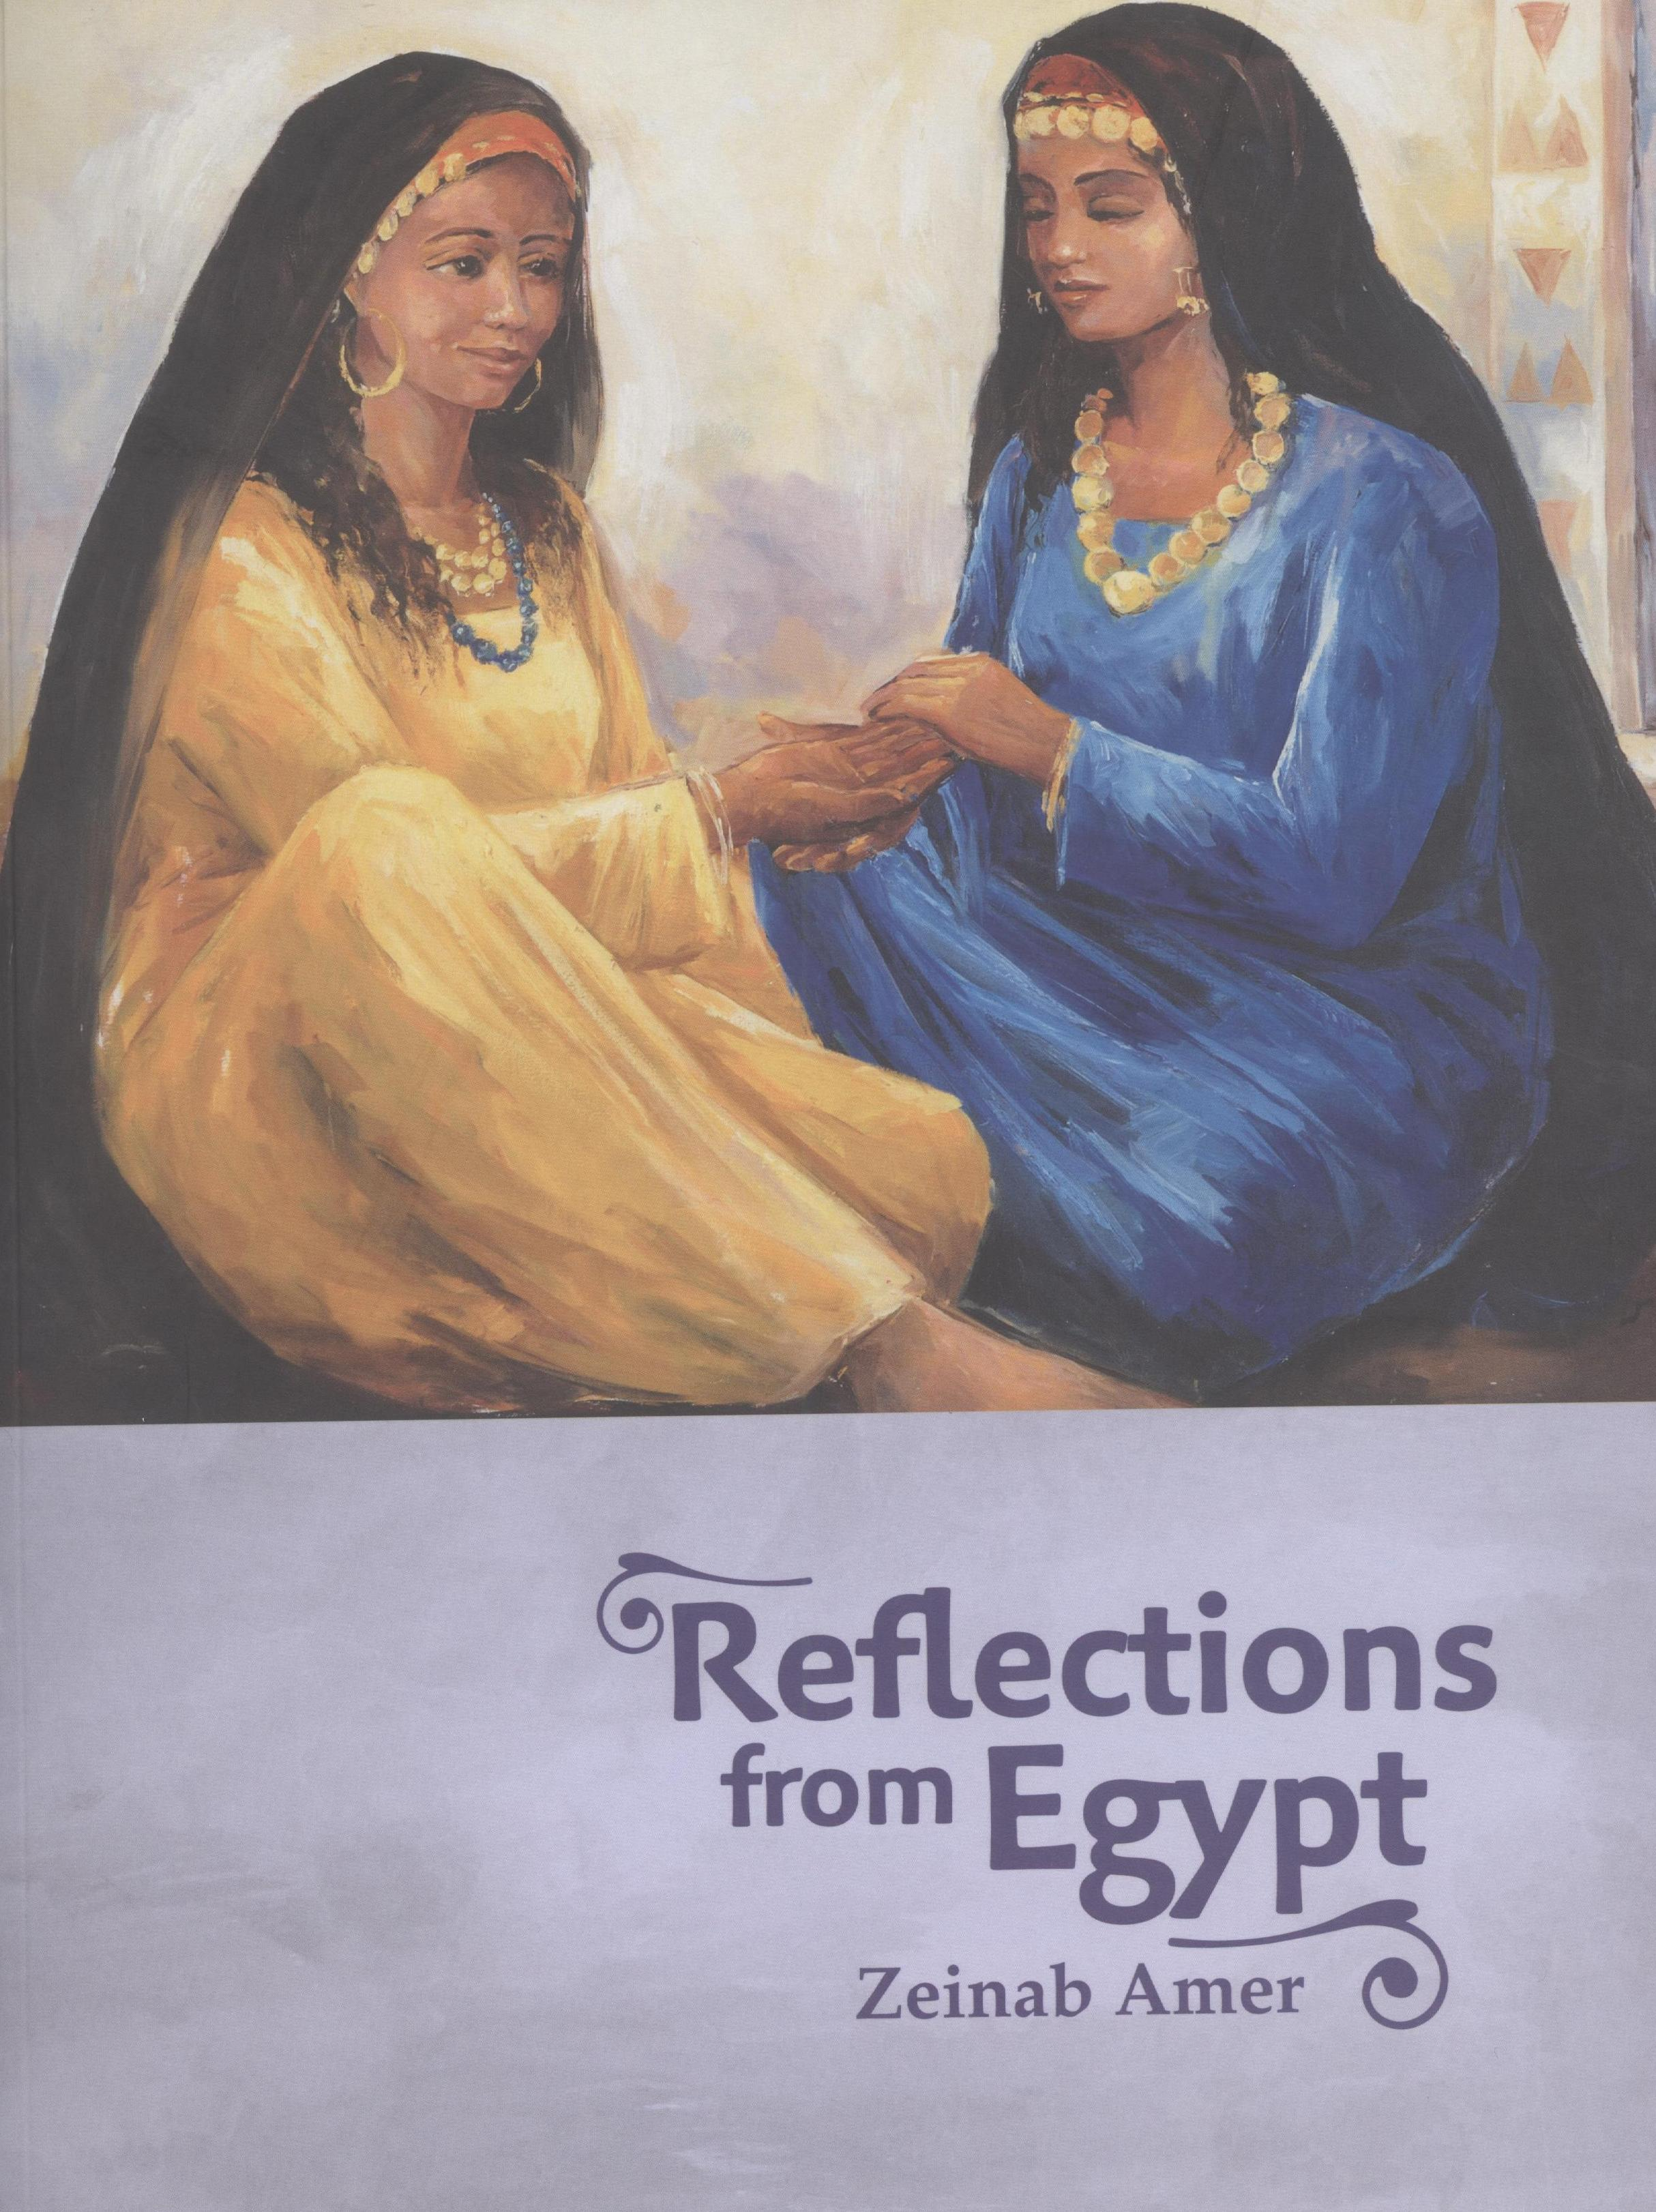 Reflections from Egypt: Zeinab Amer